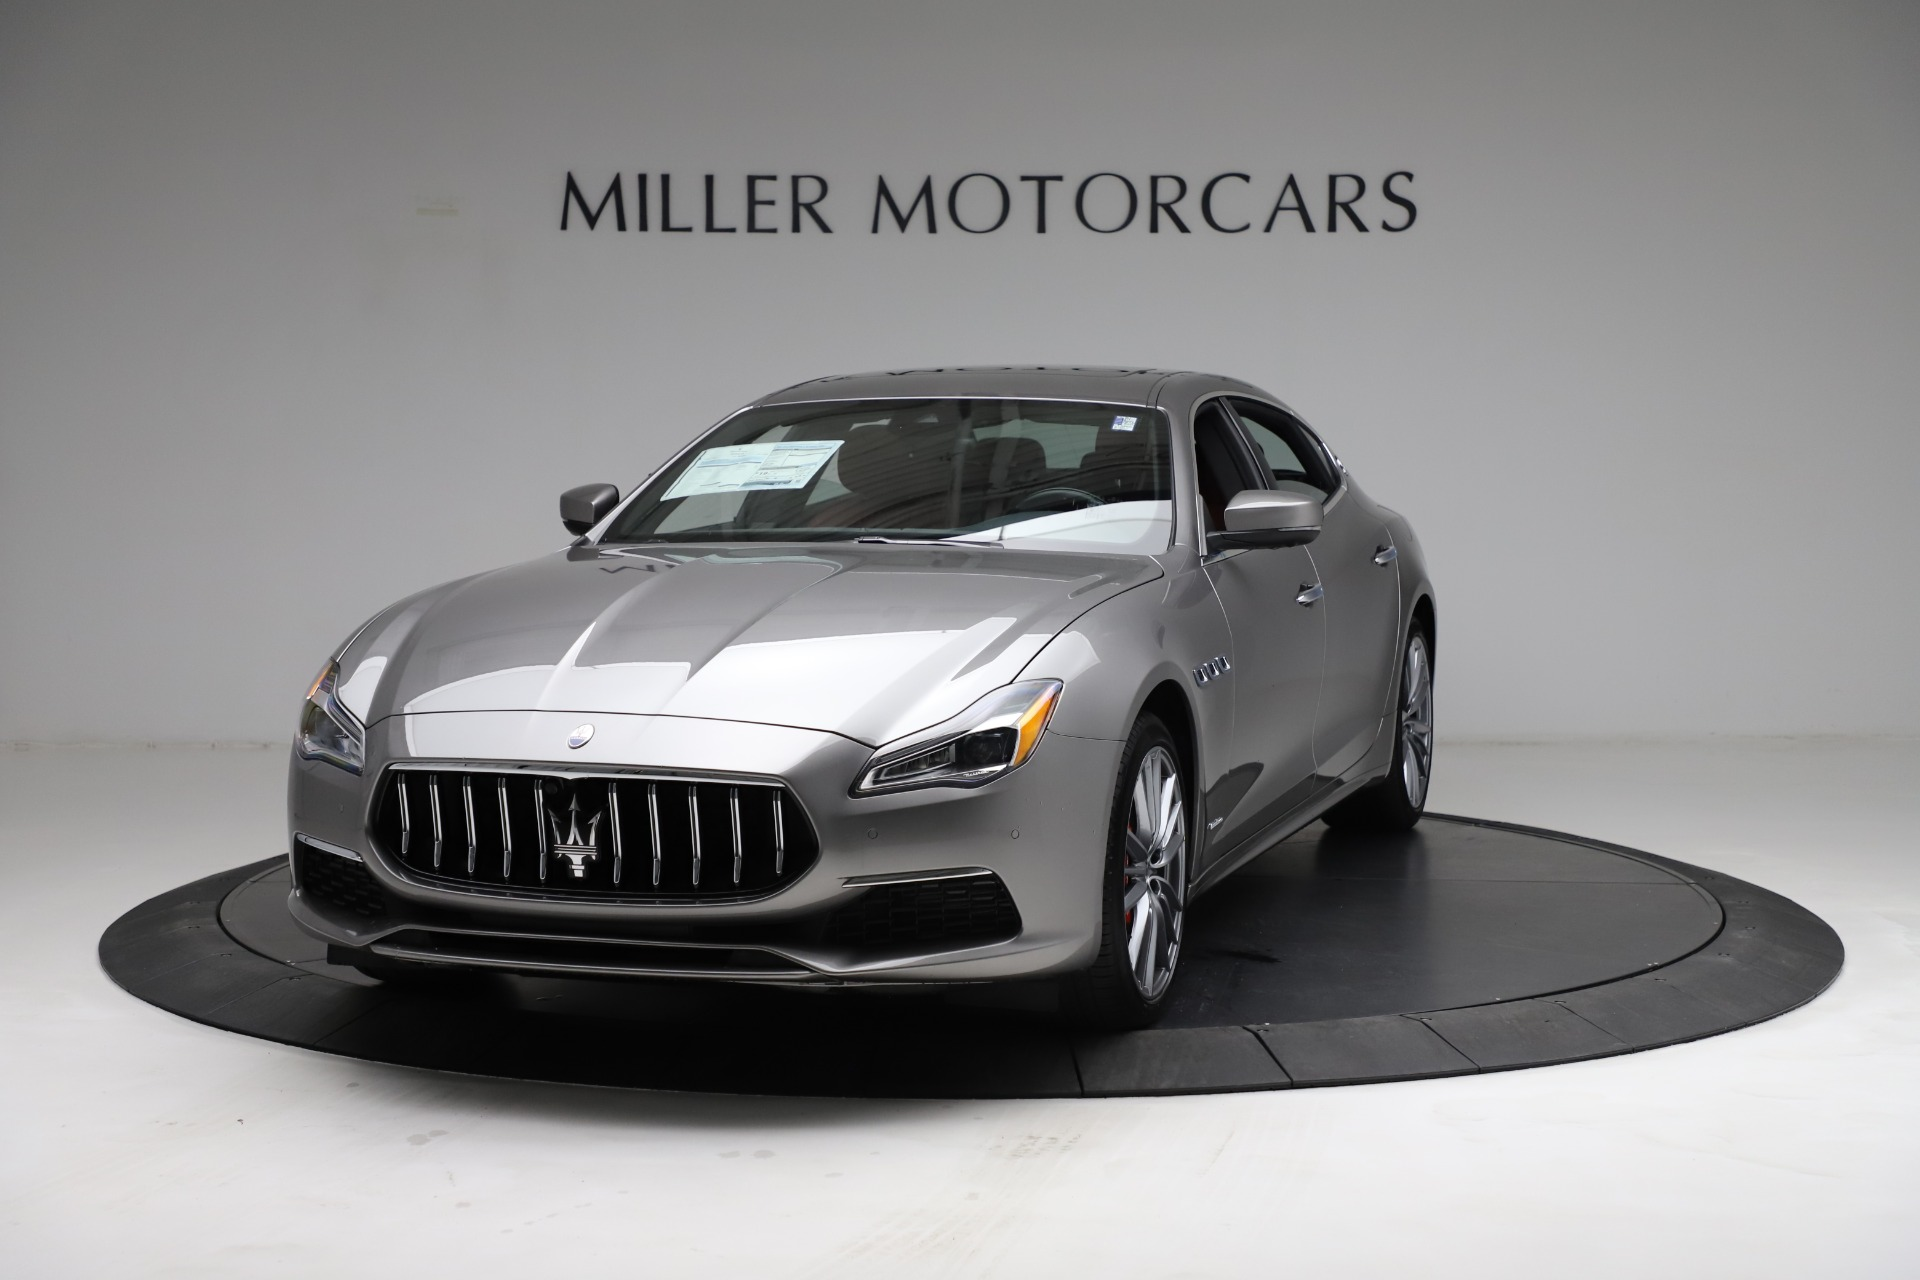 New 2021 Maserati Quattroporte S Q4 GranLusso for sale $122,435 at Rolls-Royce Motor Cars Greenwich in Greenwich CT 06830 1